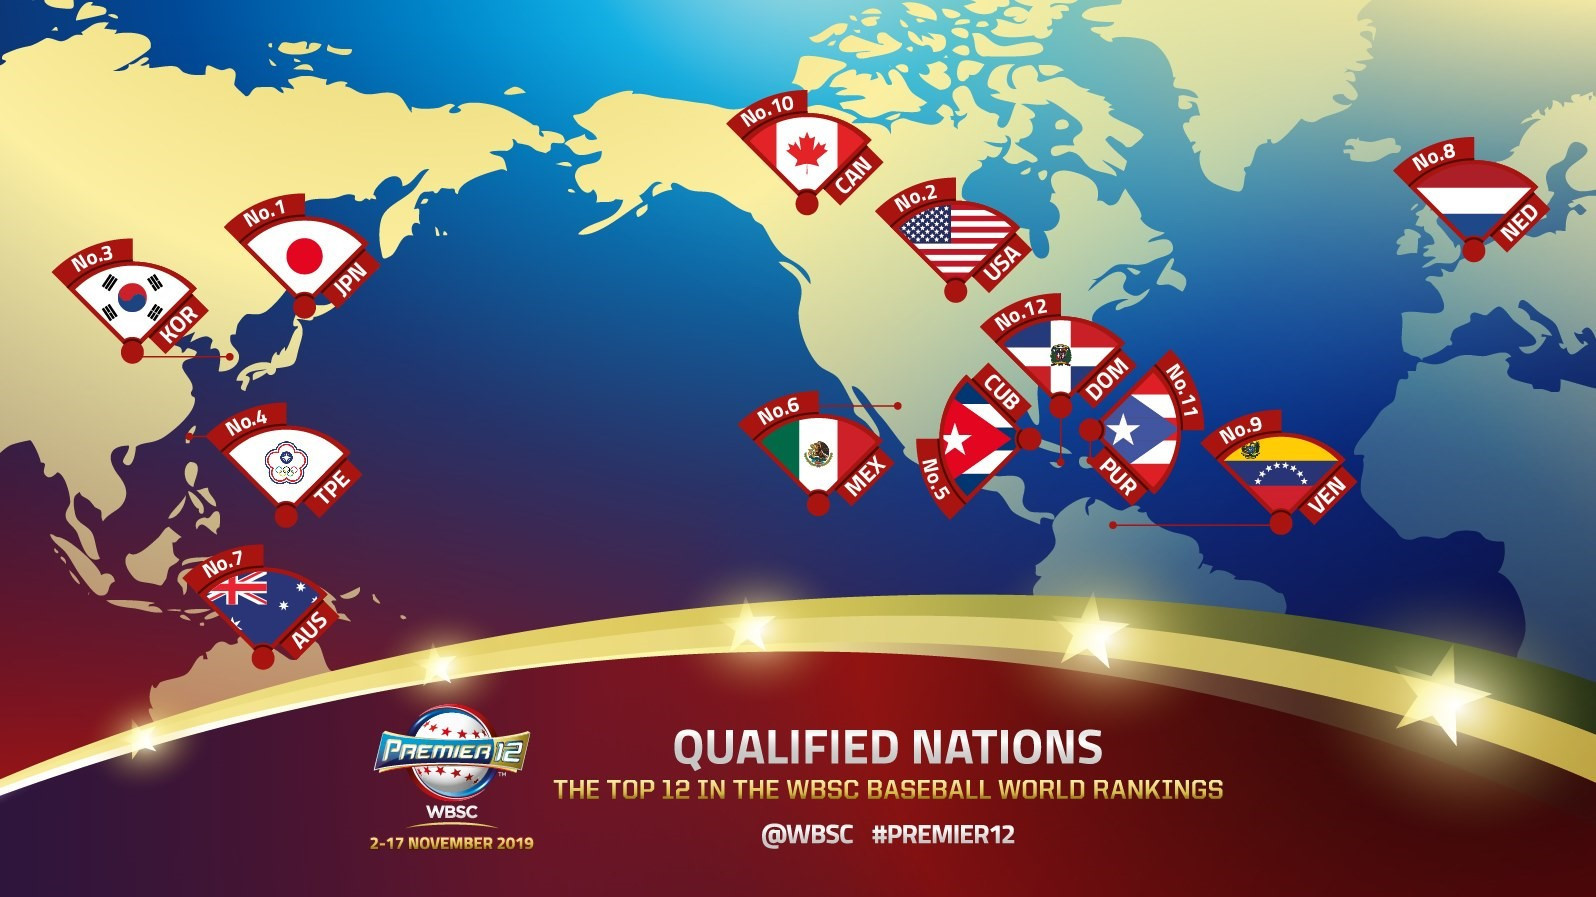 The WBSC have confirmed the qualified nations for the Premier12 tournament ©WBSC